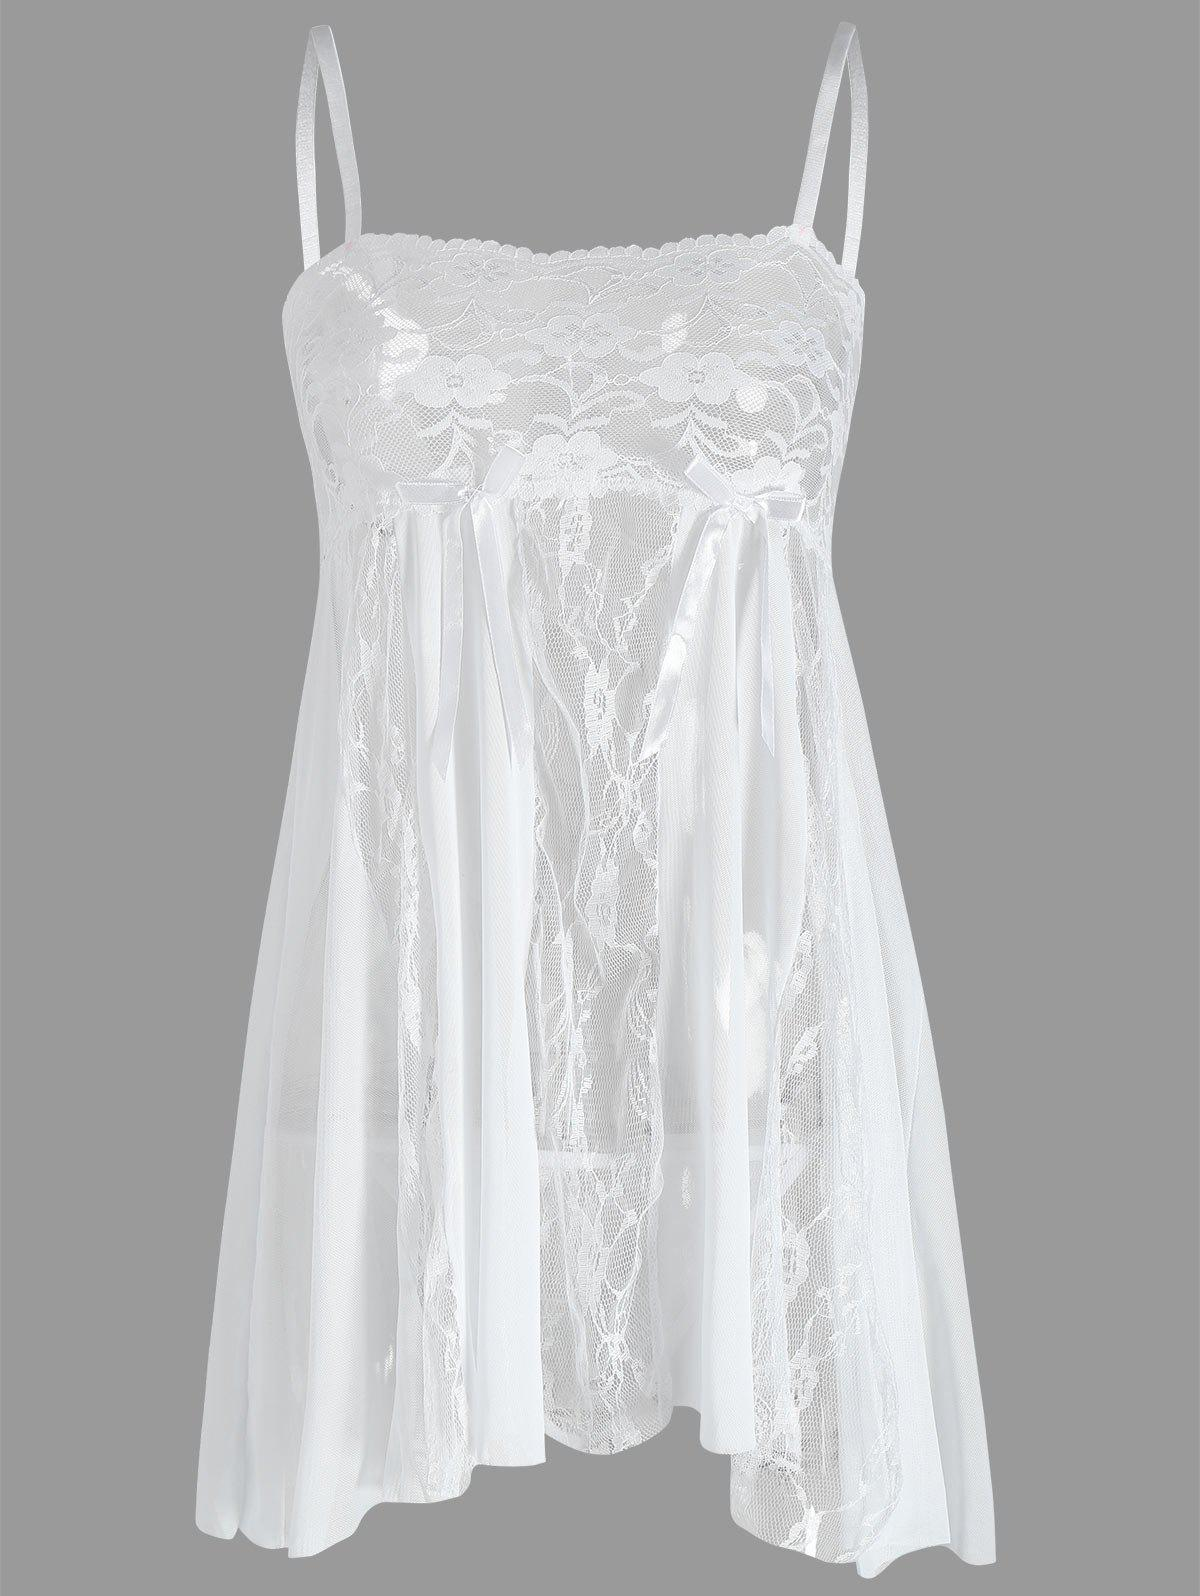 Lace Slip See Thru BabydollWOMEN<br><br>Size: 2XL; Color: WHITE; Material: Cotton,Polyester; Pattern Type: Solid; Embellishment: Backless,Lace; Weight: 0.1400kg; Package Contents: 1 x Babydoll  1 x T Back;